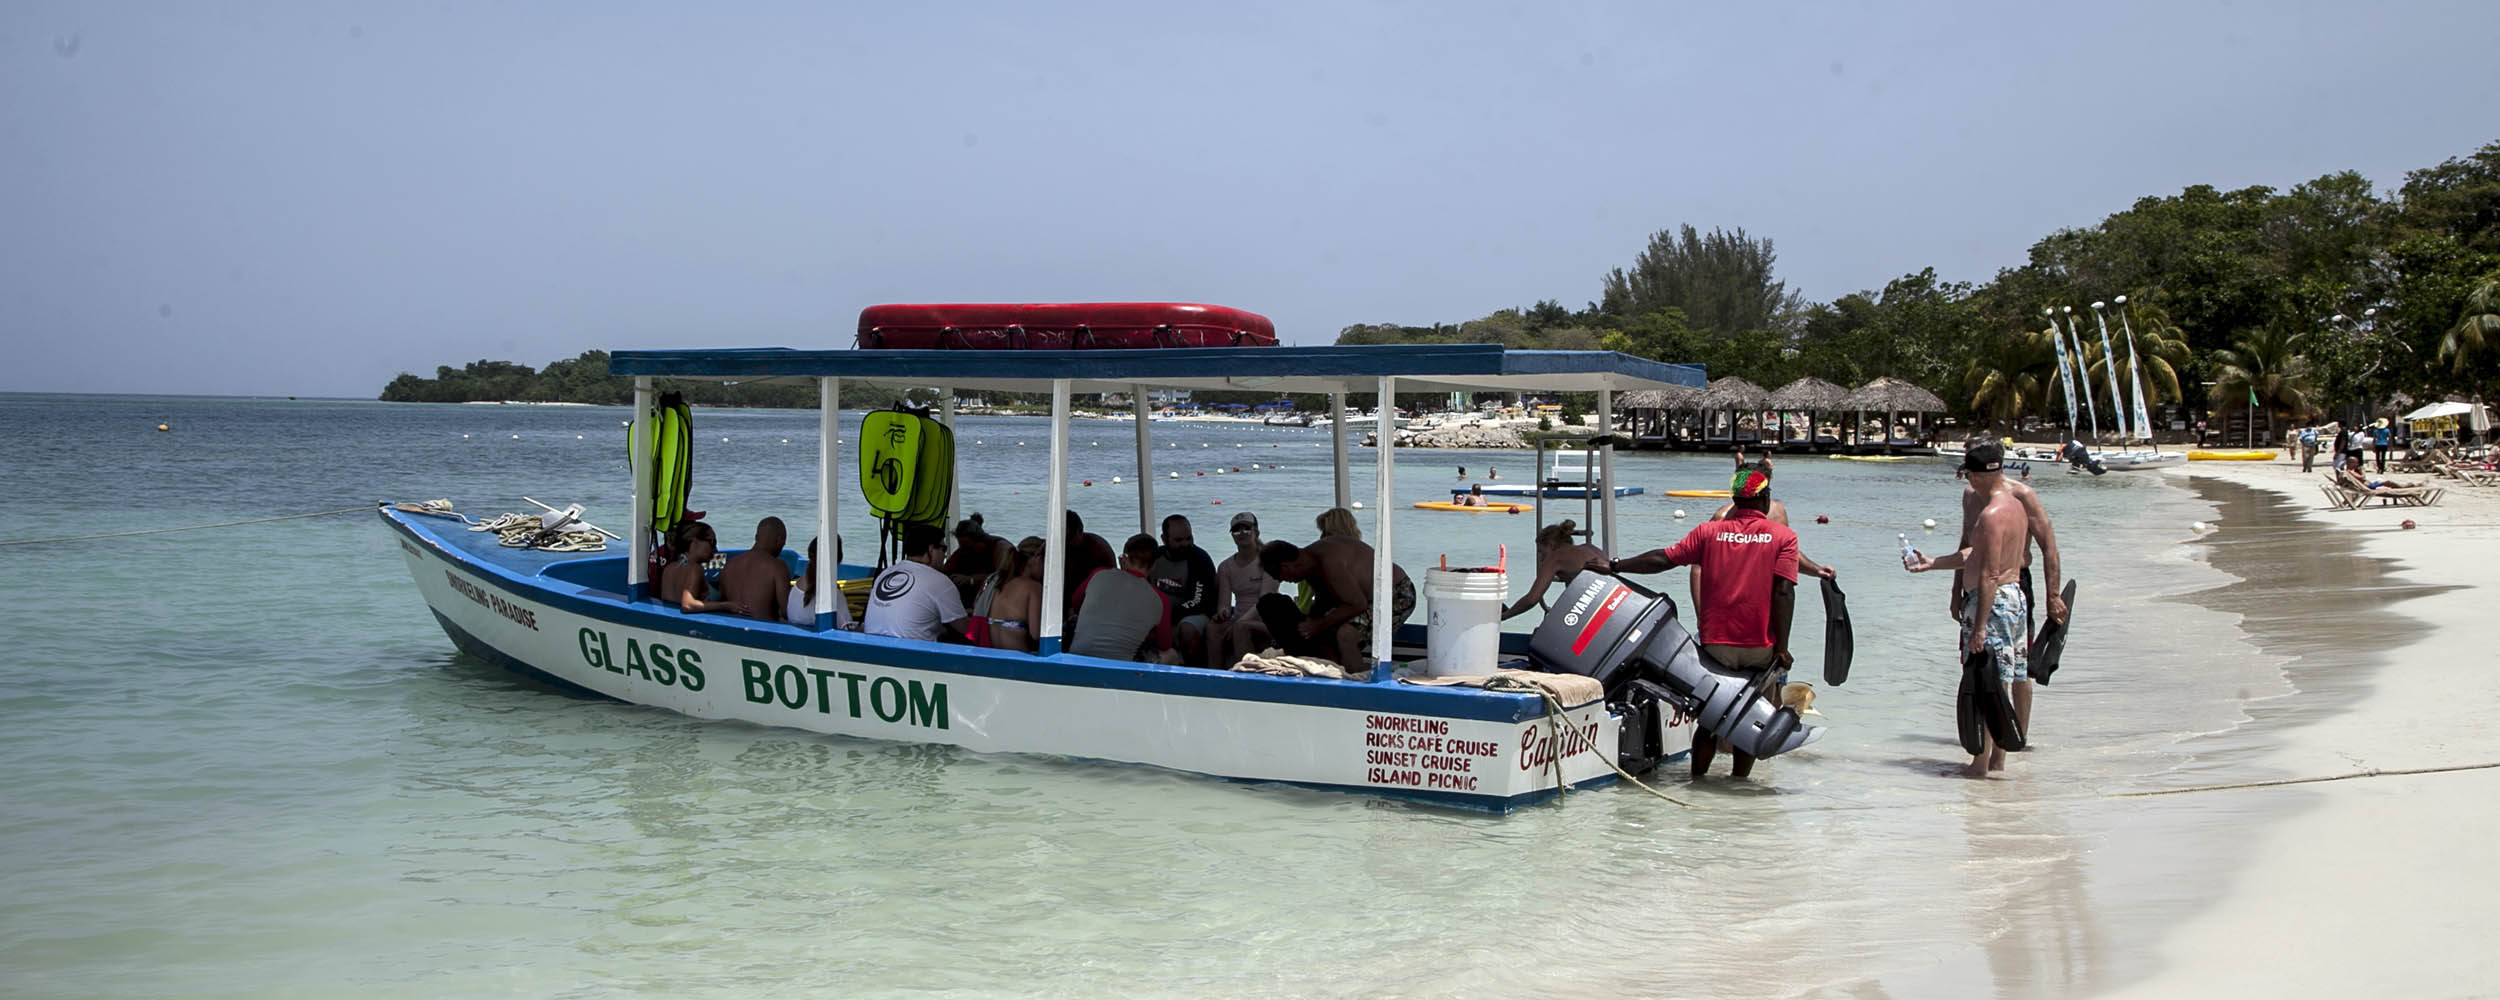 Glass Bottom Boat - Negril Jamaica